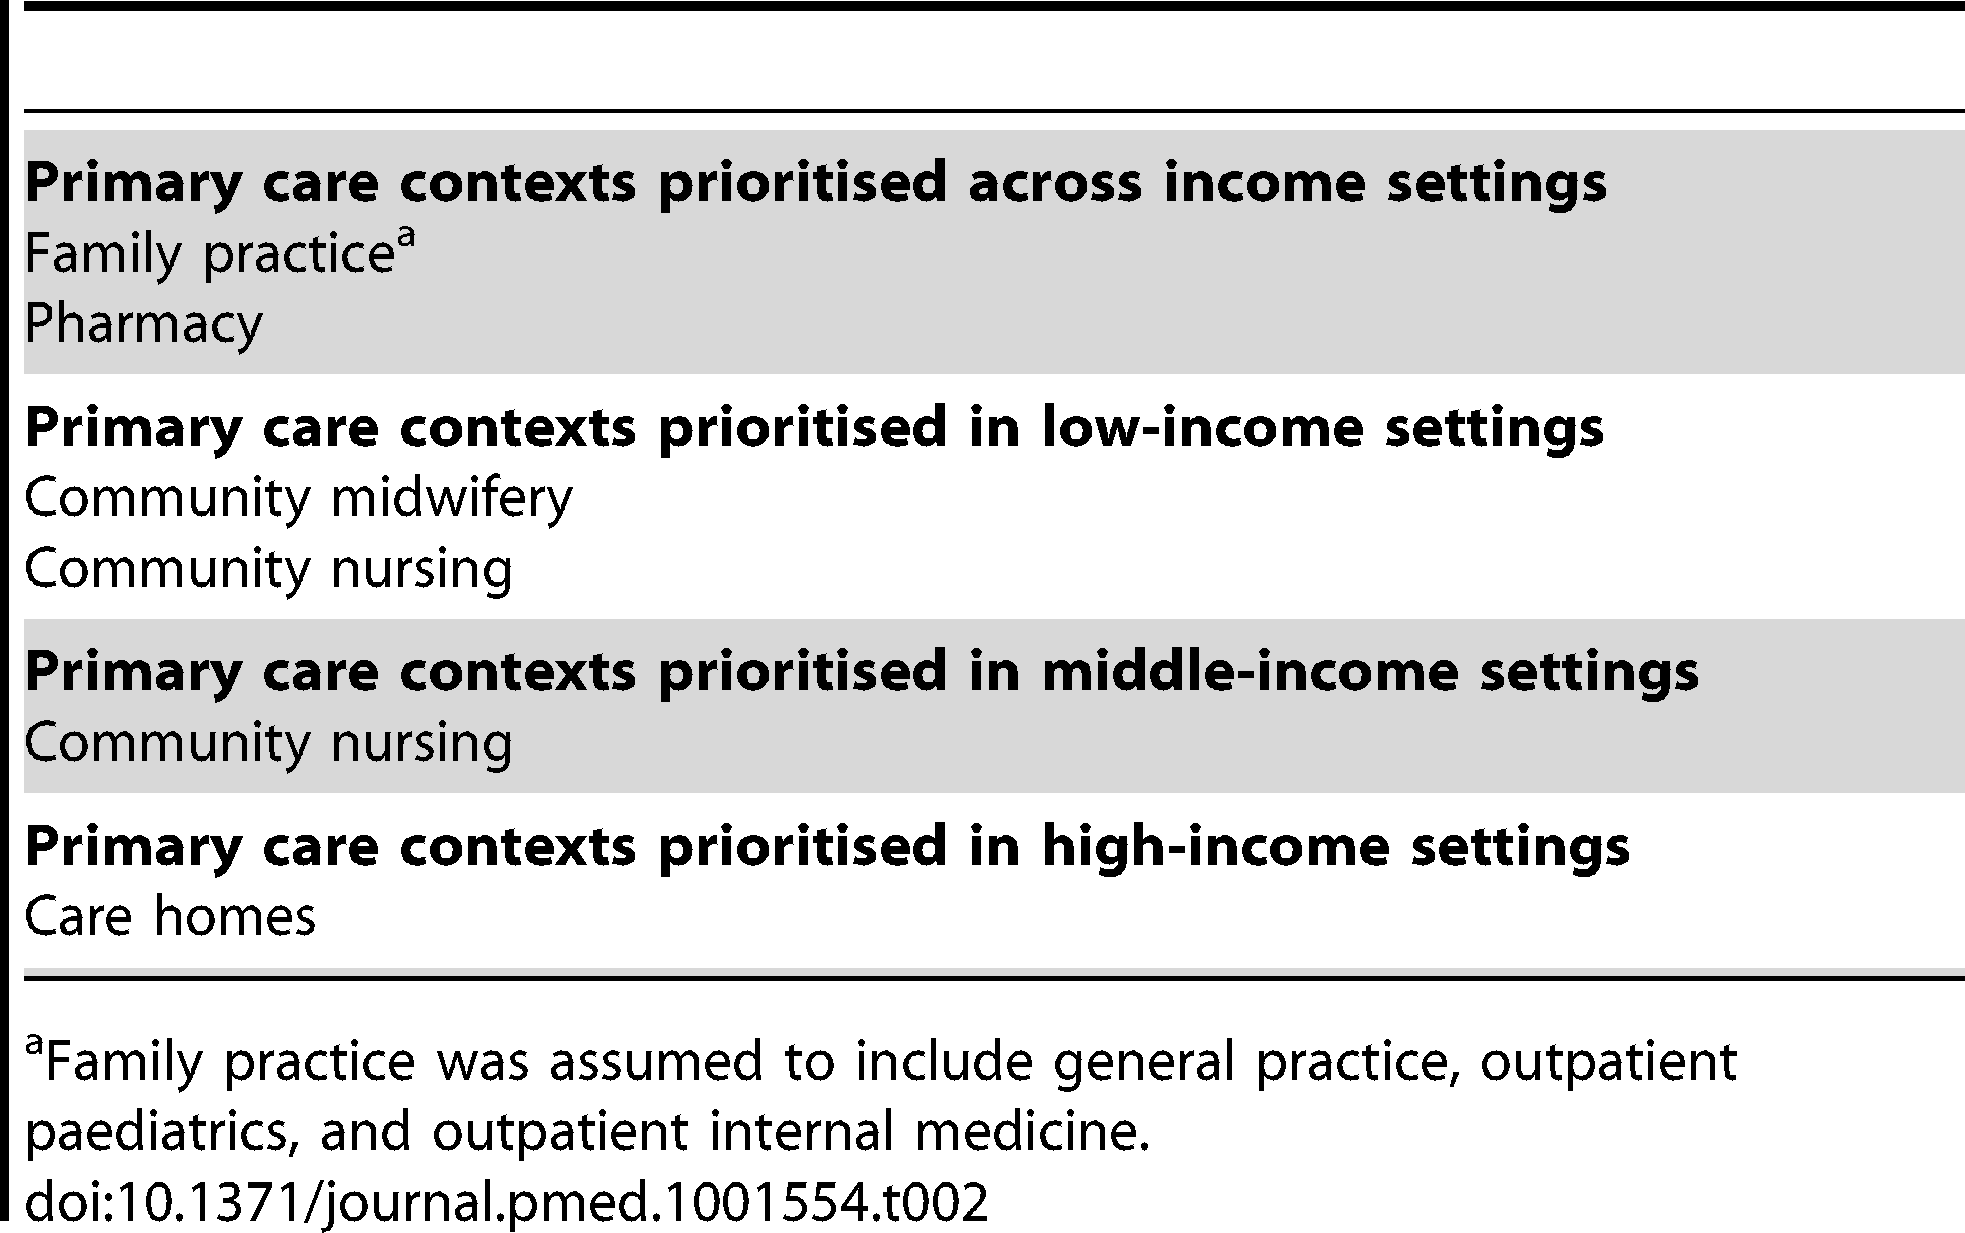 Primary care contexts that were considered to be important by over 80% of participants after round 3.